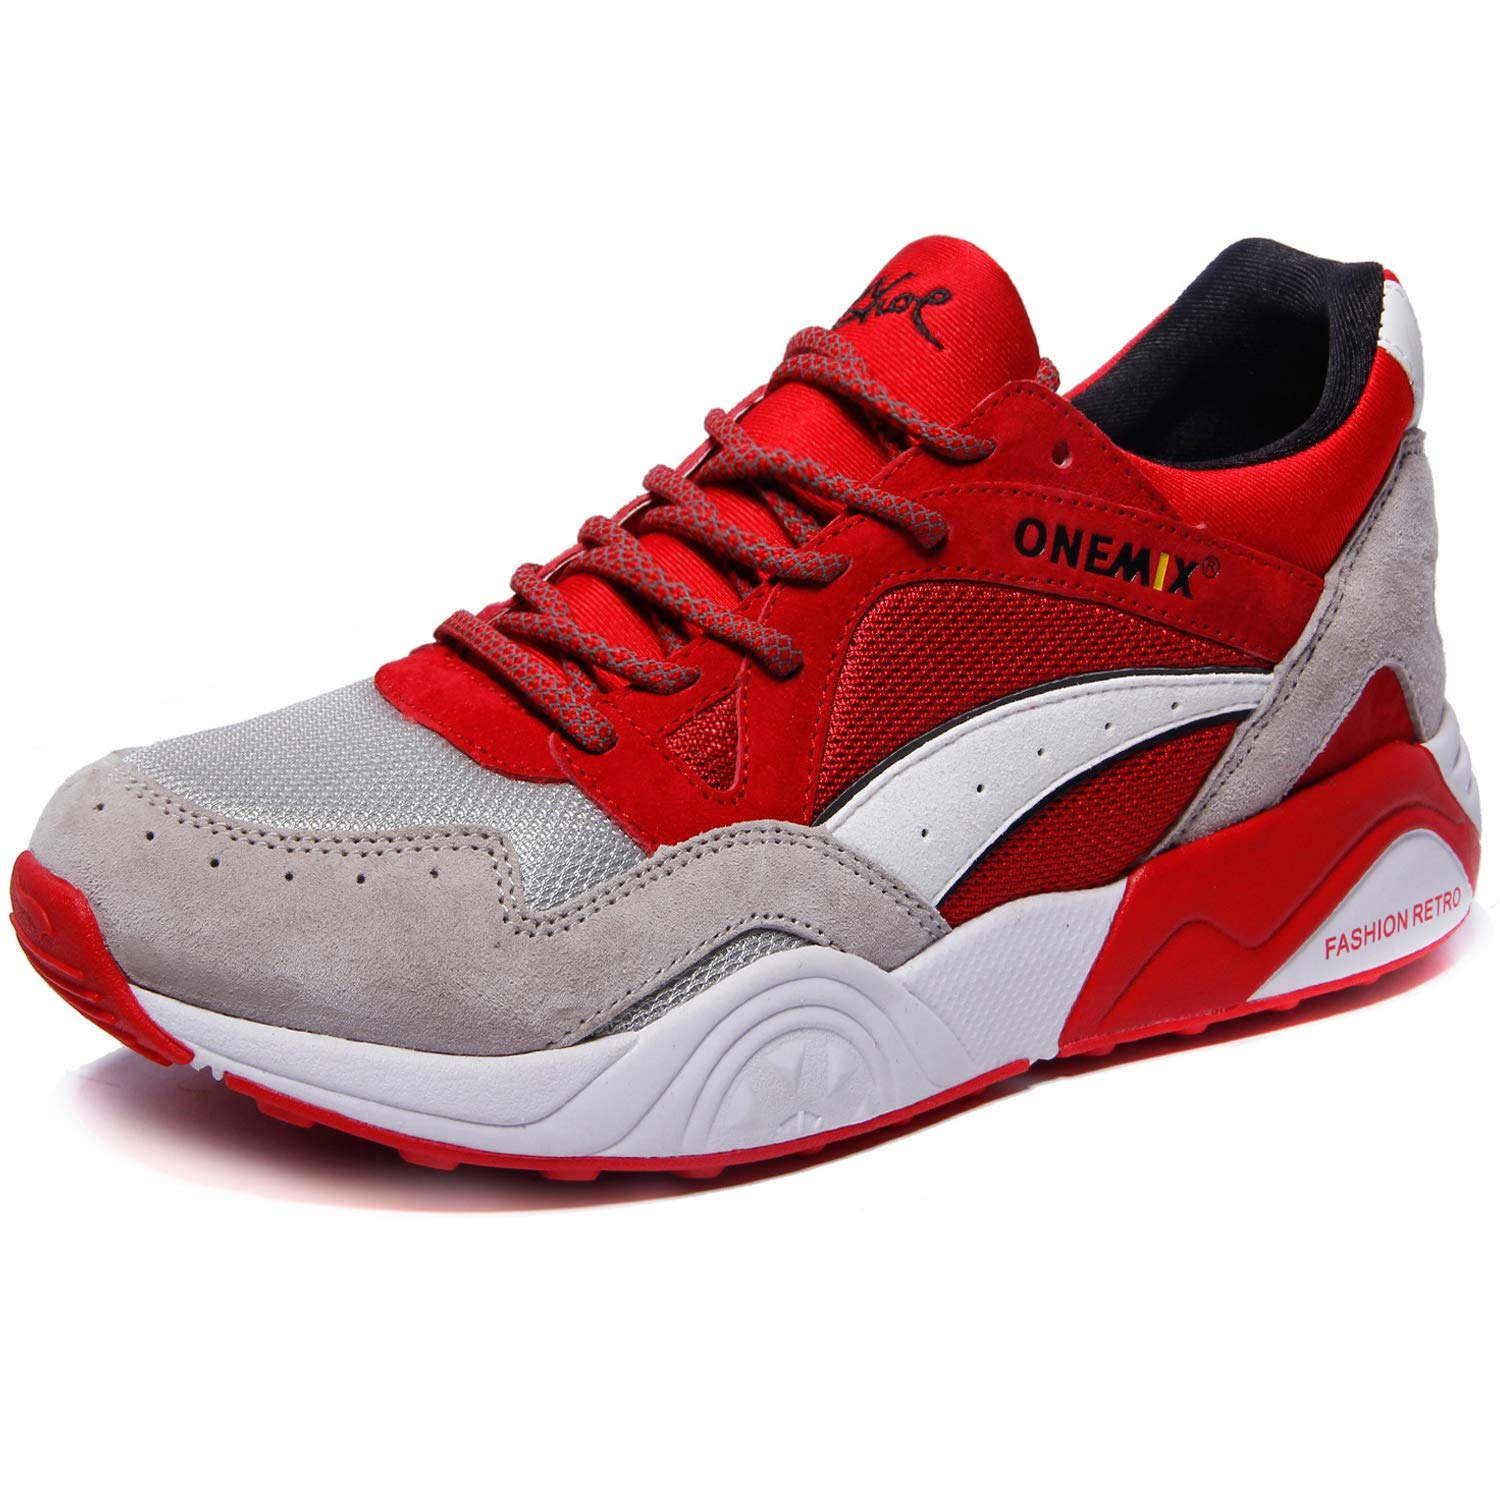 ONEMIX Men's Fashion Sneakers Casual Retro Breathable Running Shoes Grey/Red45